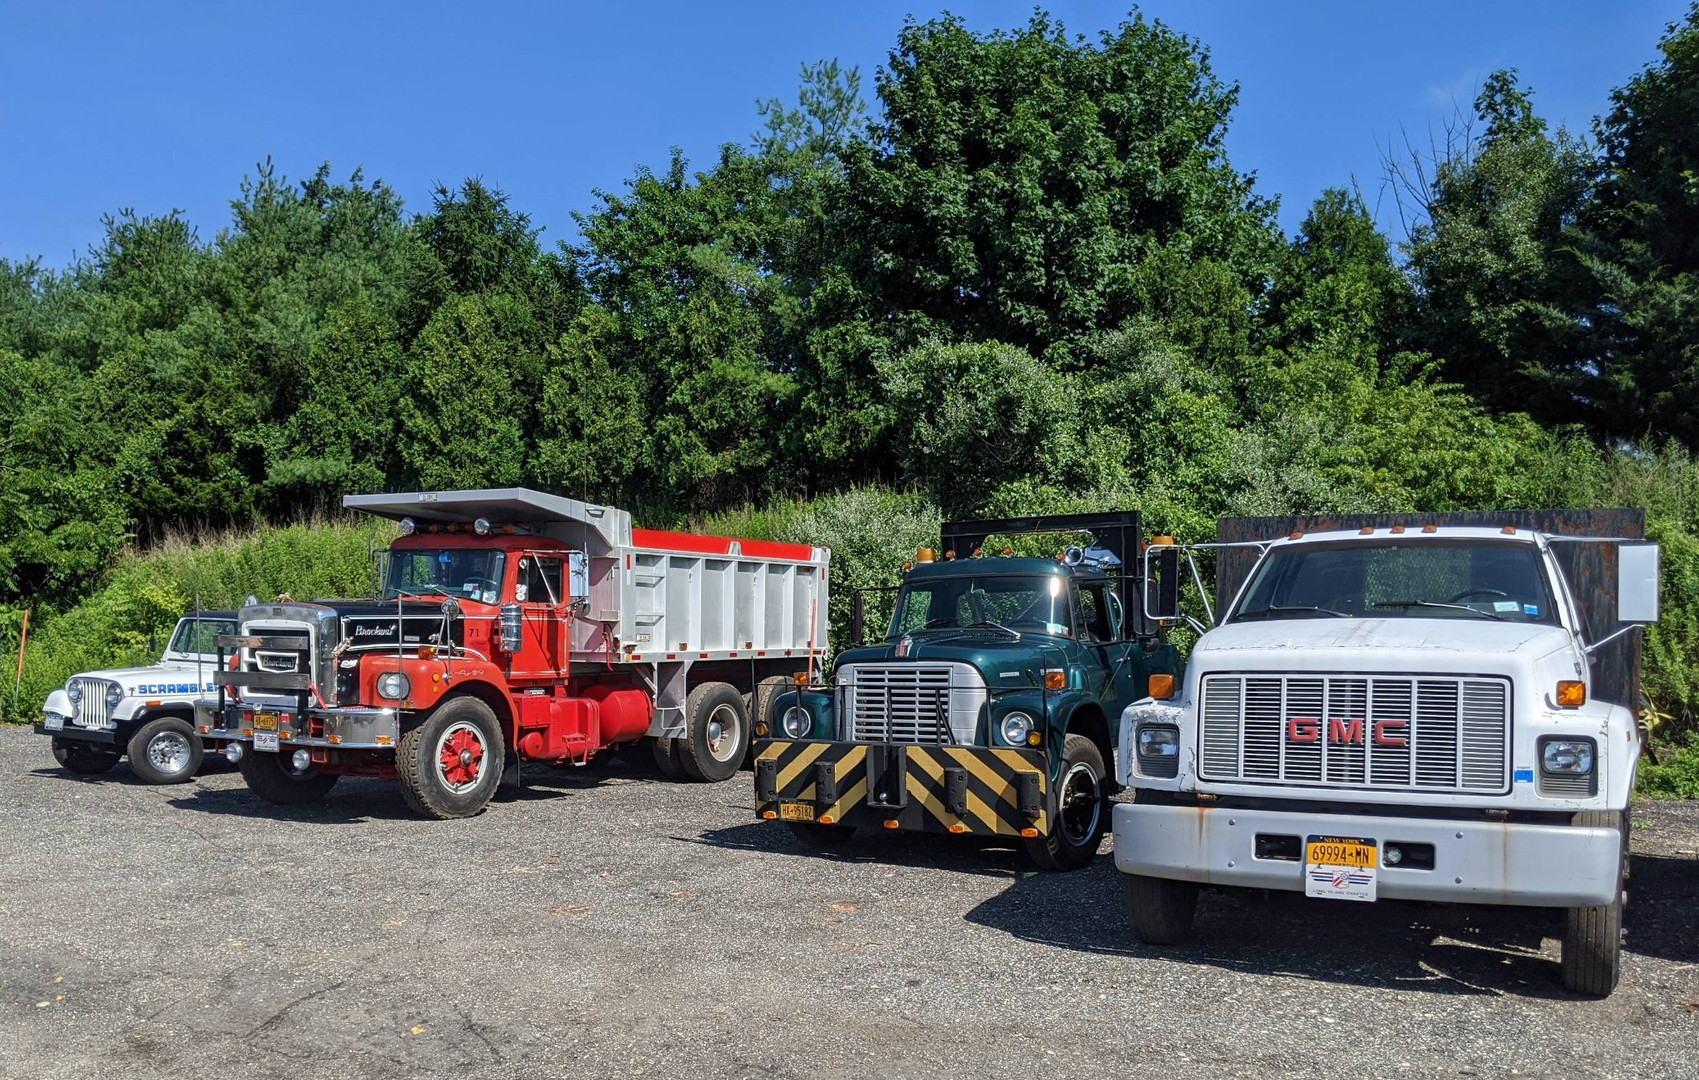 Left to right: Philip Huntington's 1984 AMC Jeep CJ-8 Scrambler pickup, Howard Pratt's 1971 Brockway N361LL dump, Craig Kenda's 1972 International Loadstar wrecker, and Karl Walz Sr.'s 1994 GMC TopKick flatbed